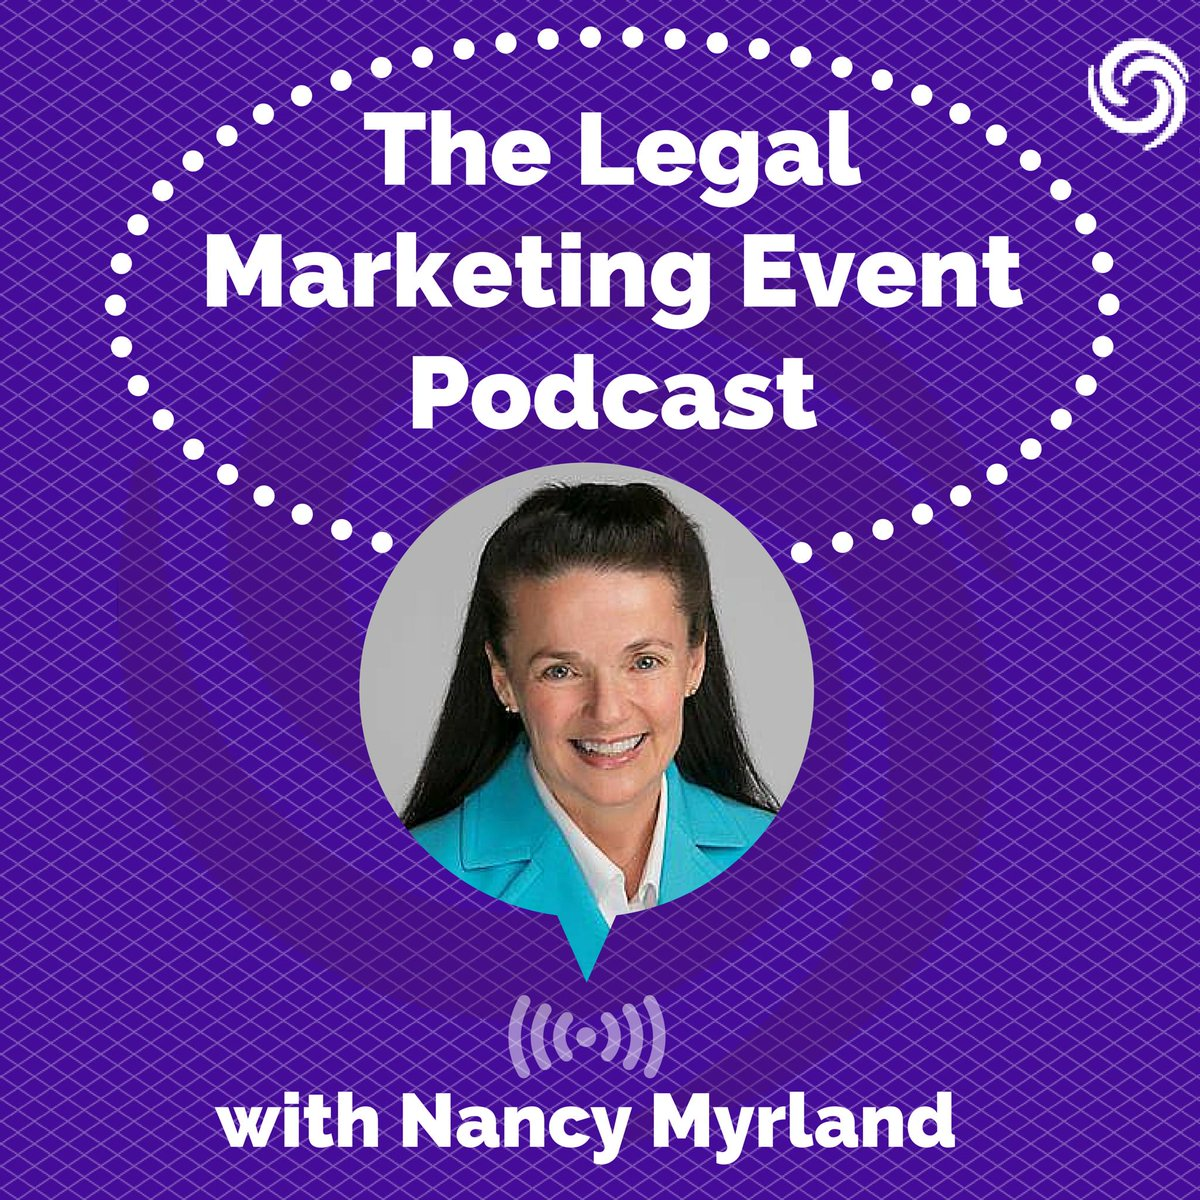 In case you missed it, my podcast launched! The Legal Marketing Event Podcast #lma15 #lmamkt http://t.co/tUrOjZ6NNY http://t.co/ayUhGPYs1a